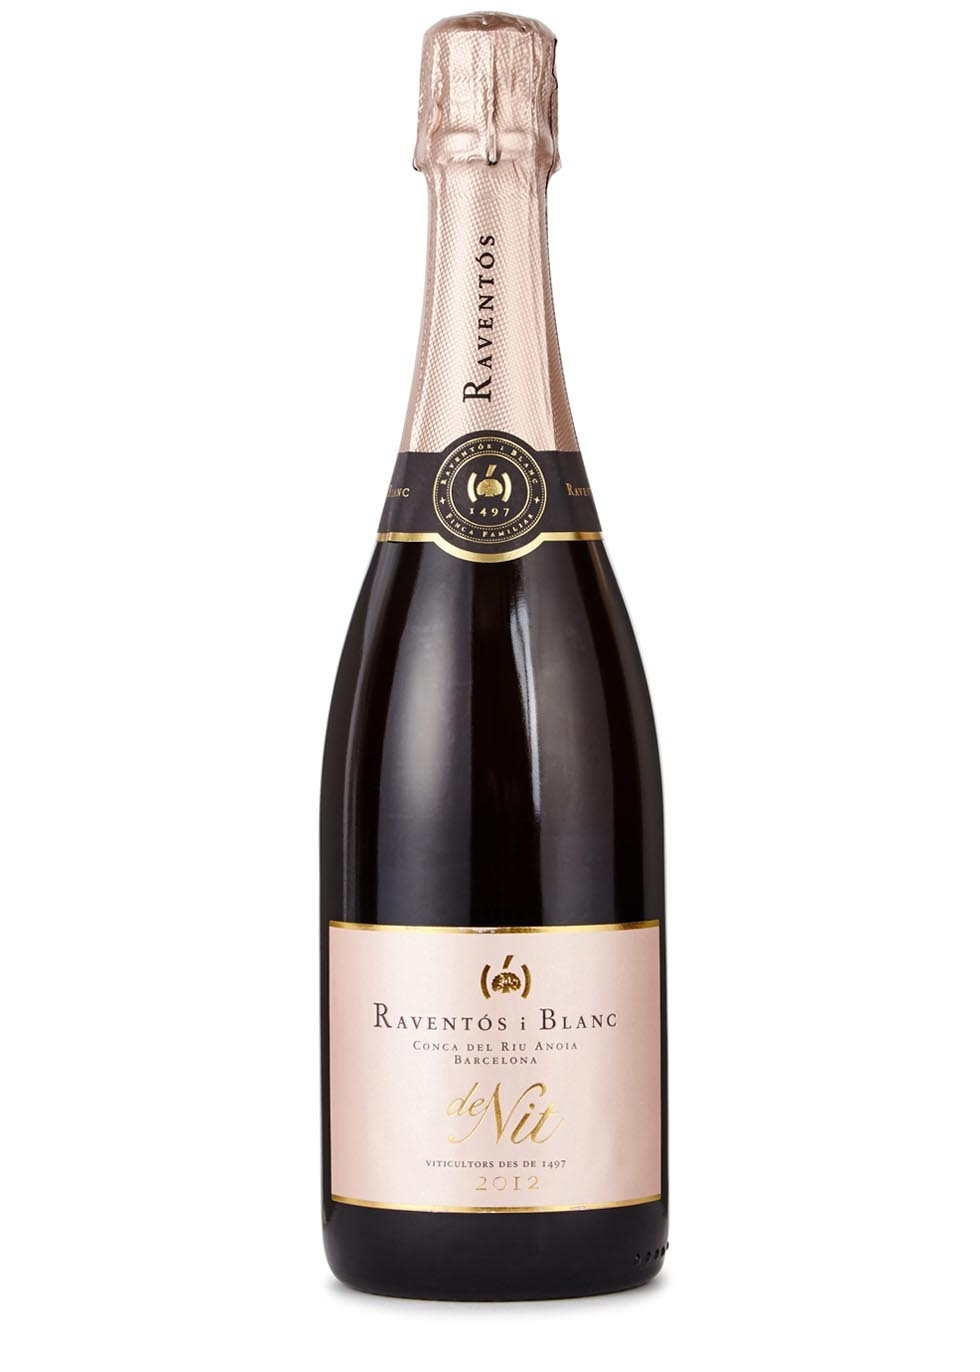 raventos i blanc company Bruberry blanc is a golden color with orange blossom and tropical aromas the wine is well balanced on the palate showing off white peach and apricot flavors with slight mineral notes that add complexity.